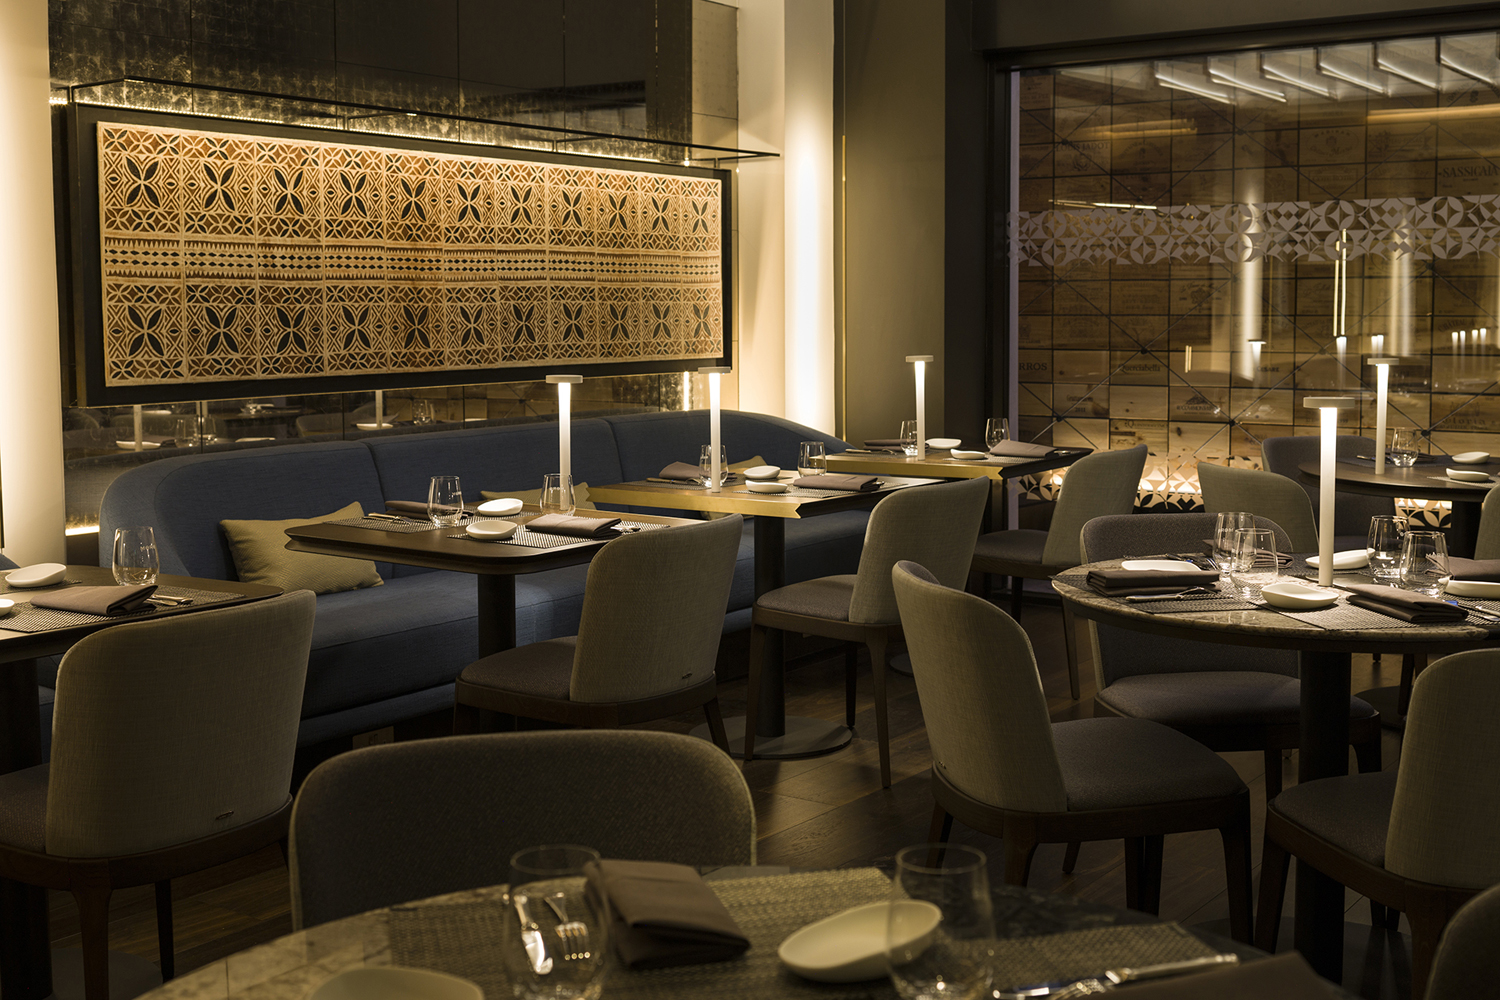 Interior of Mere, Monica and David Galetti's new London restaurant